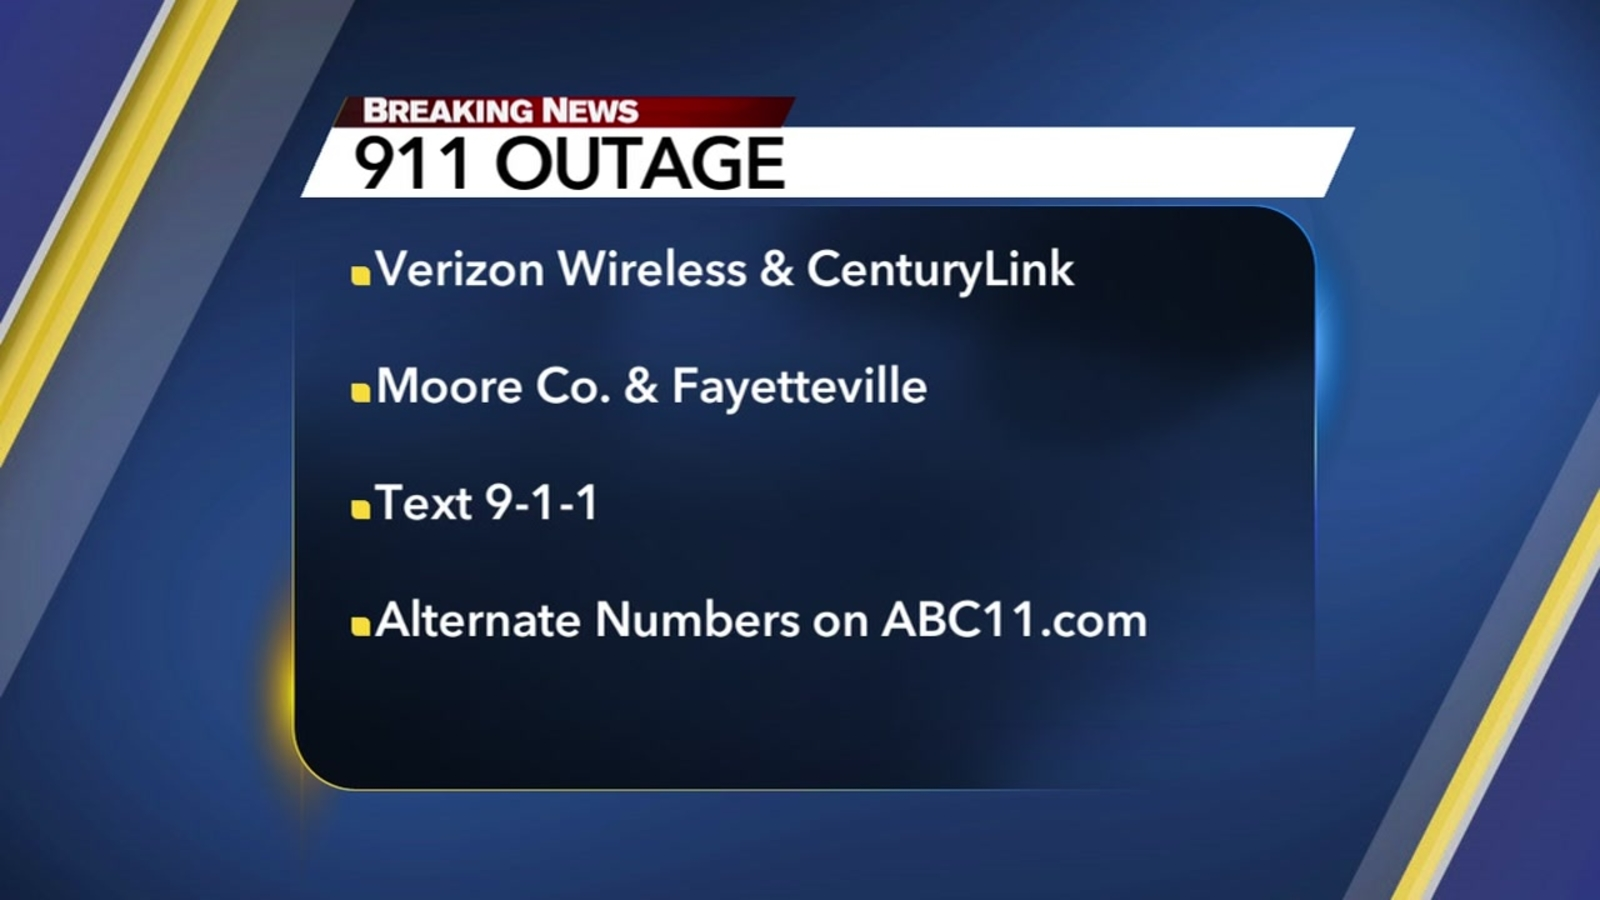 911 outage - photo #10